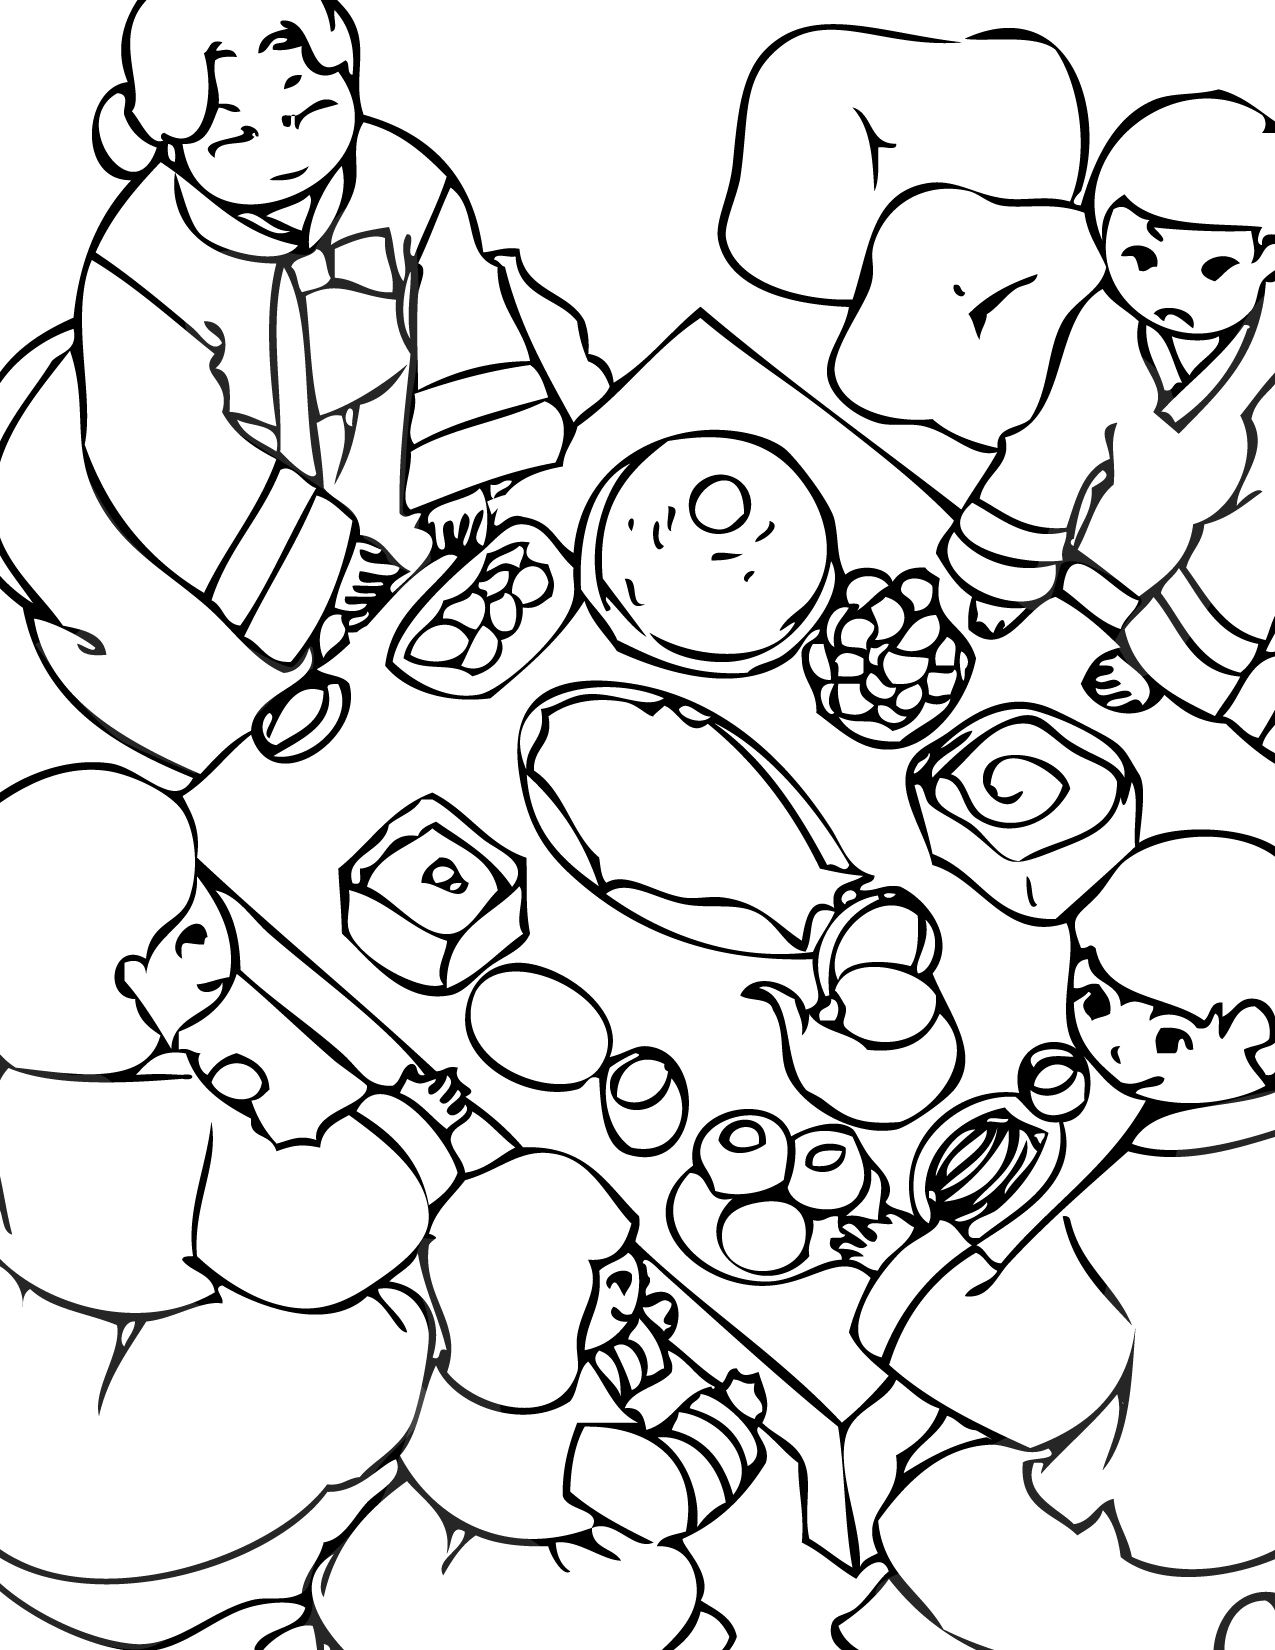 Good Korea Coloring Page | Print This Page | Korean Holidays Coloring Pages | Coloring  Pages